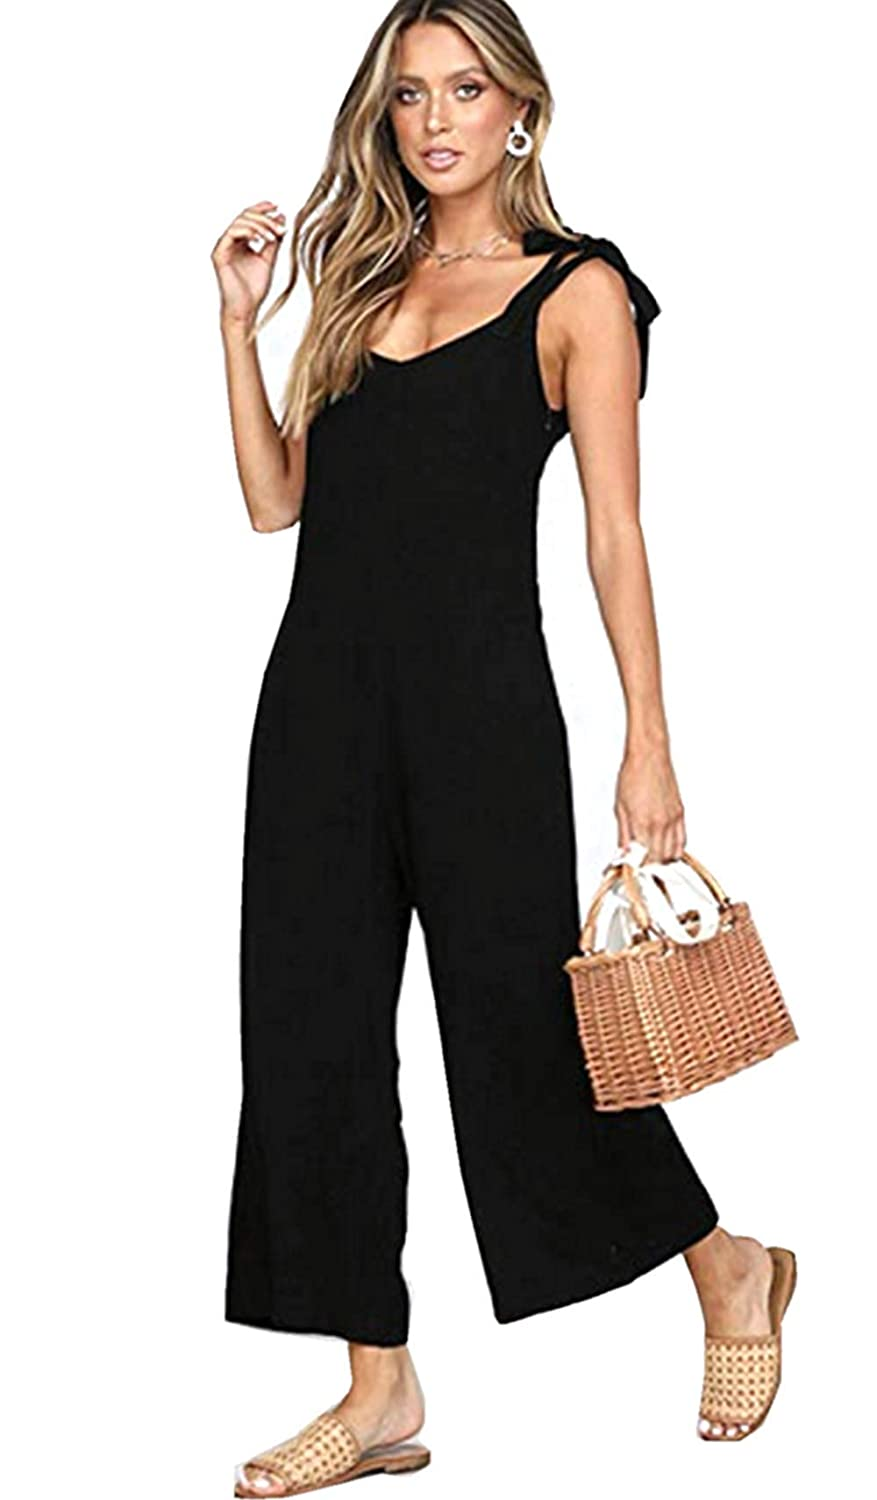 e9881fbacc3 Amazon.com  Asskdan Women s Linen Sleeveless Jumpsuits Wide Leg Long Pants  Backless Jumpsuit Rompers with Pockets  Clothing